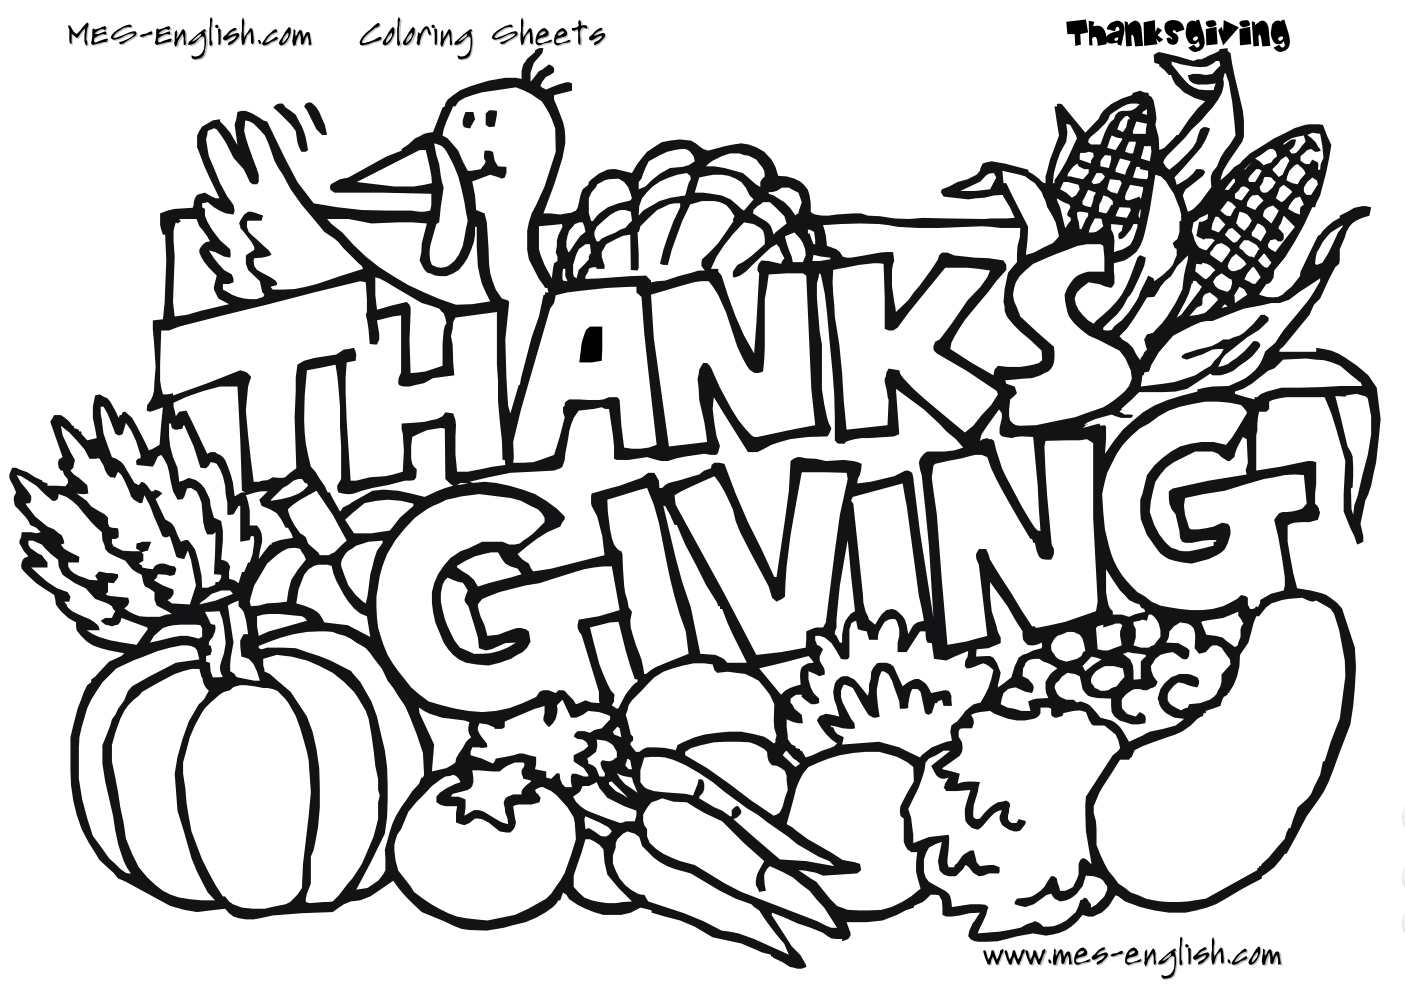 Free Thanksgiving Coloring Pages For Kids - Free Printable | Free Printable Thanksgiving Coloring Pages Worksheets